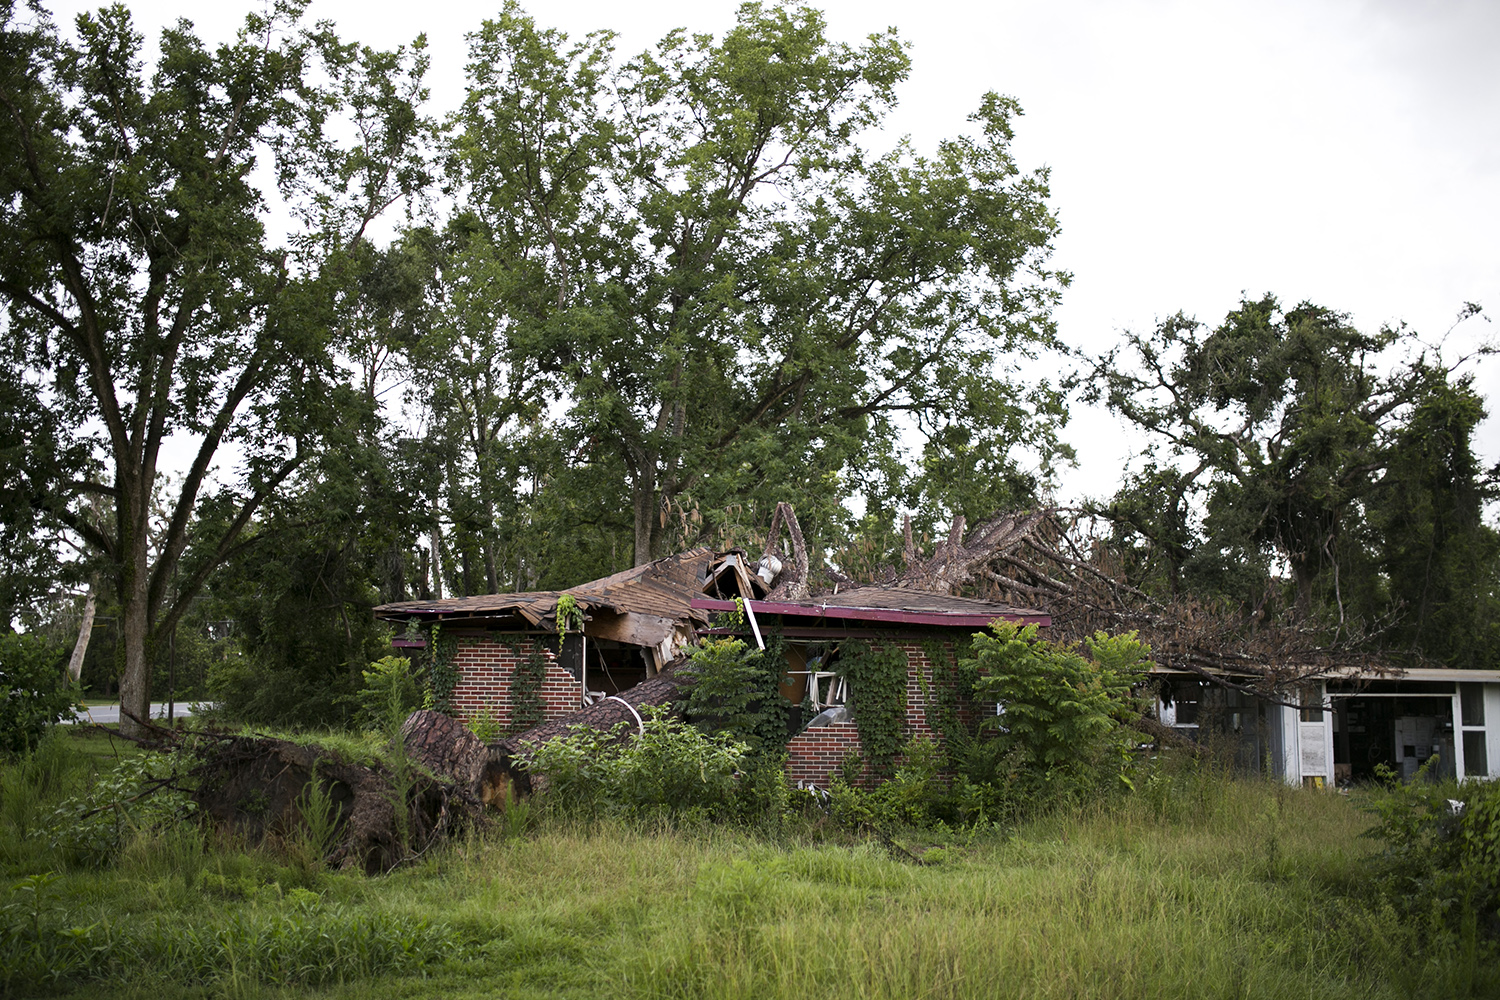 A home sits abandoned in Greenwood, Fla., one of many abandoned homes in the region after the destruction of Hurricane Michael.